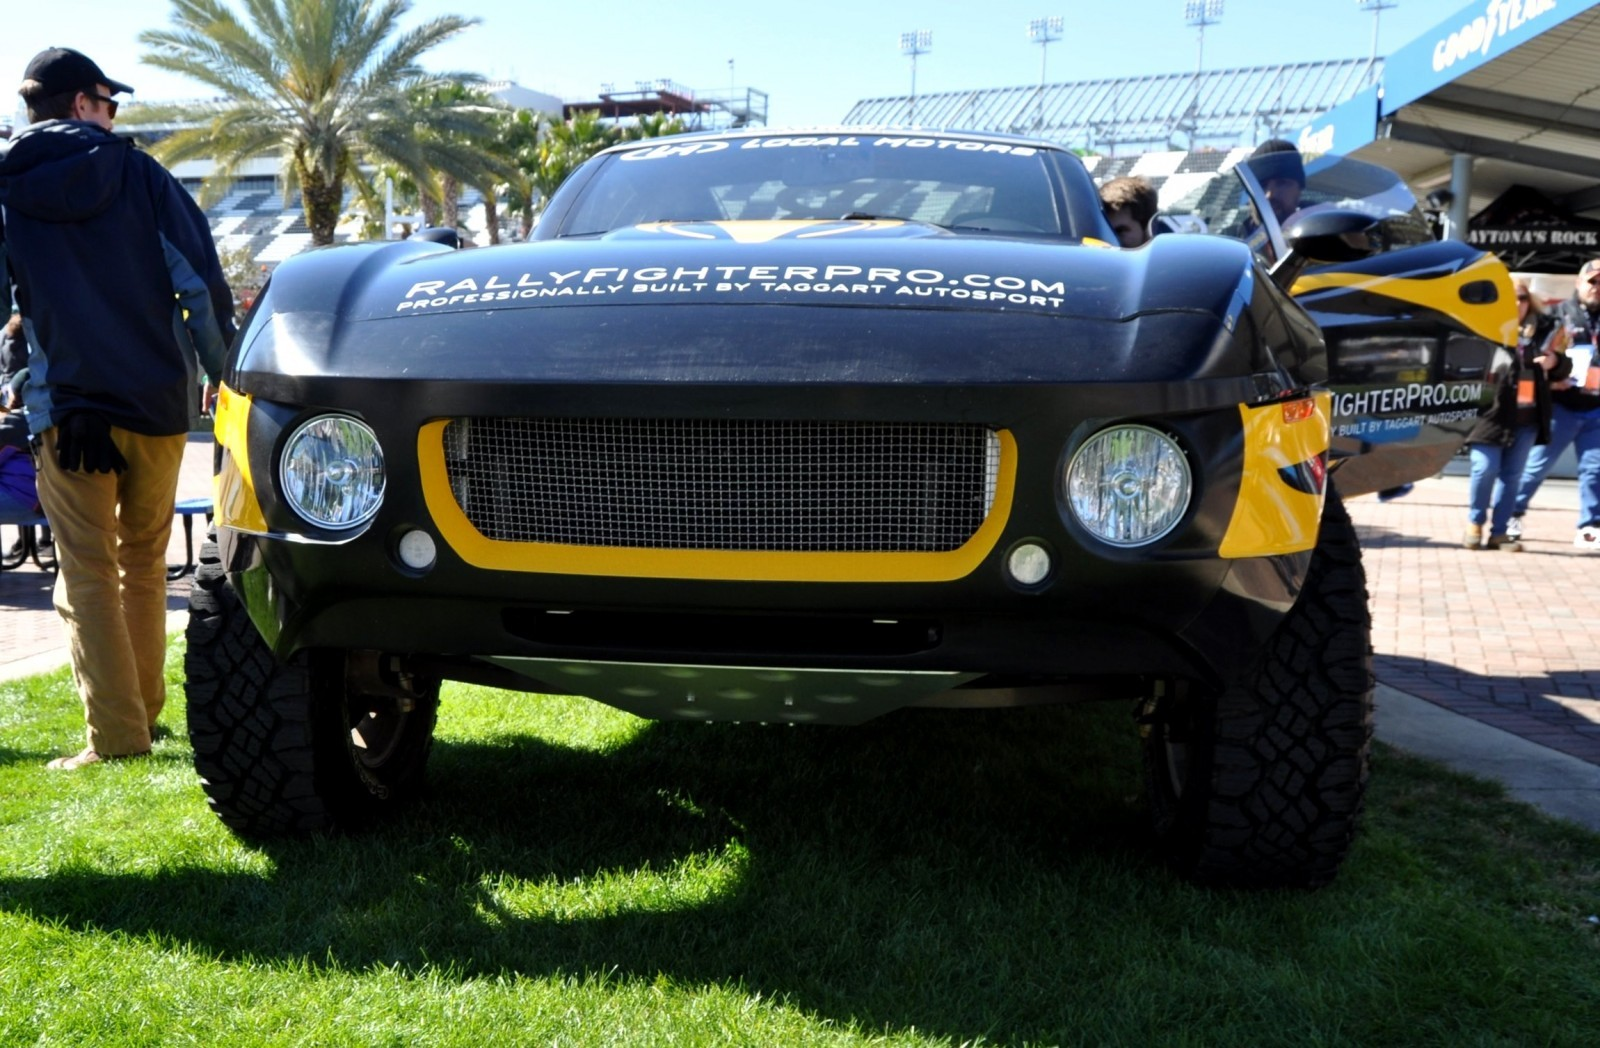 2015 Rally Fighter PRO By Taggart Autosport 37